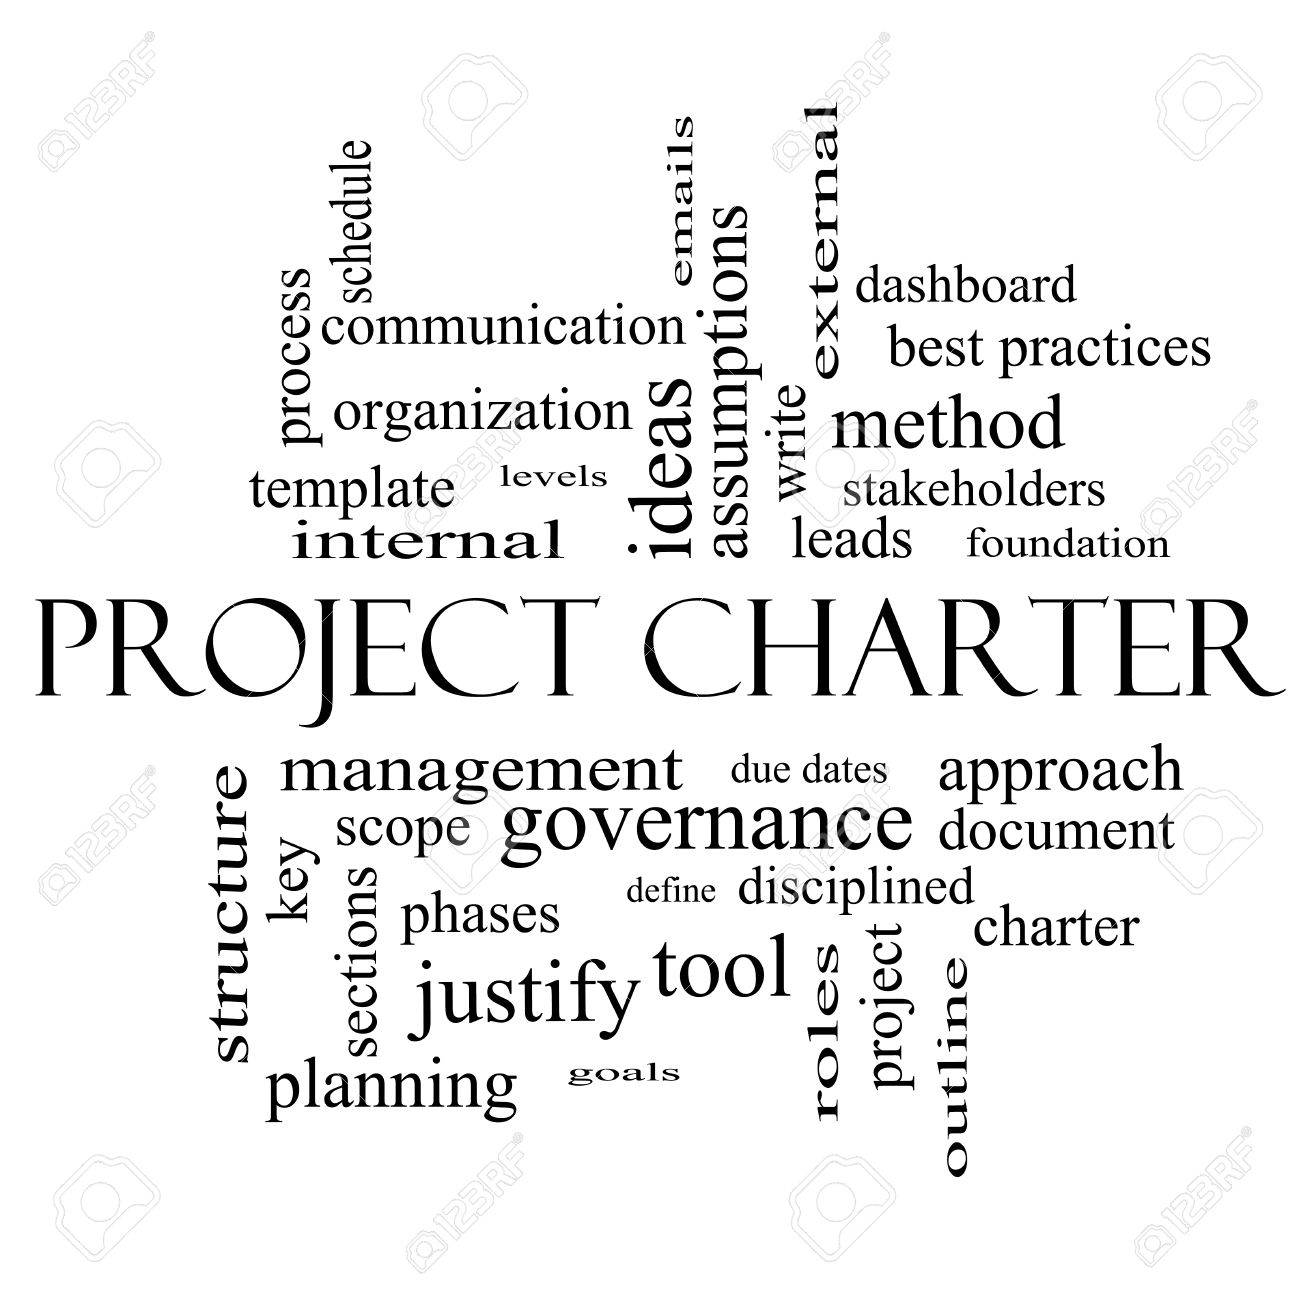 Amazing Pmo Charter Template Pictures Inspiration - Examples ...